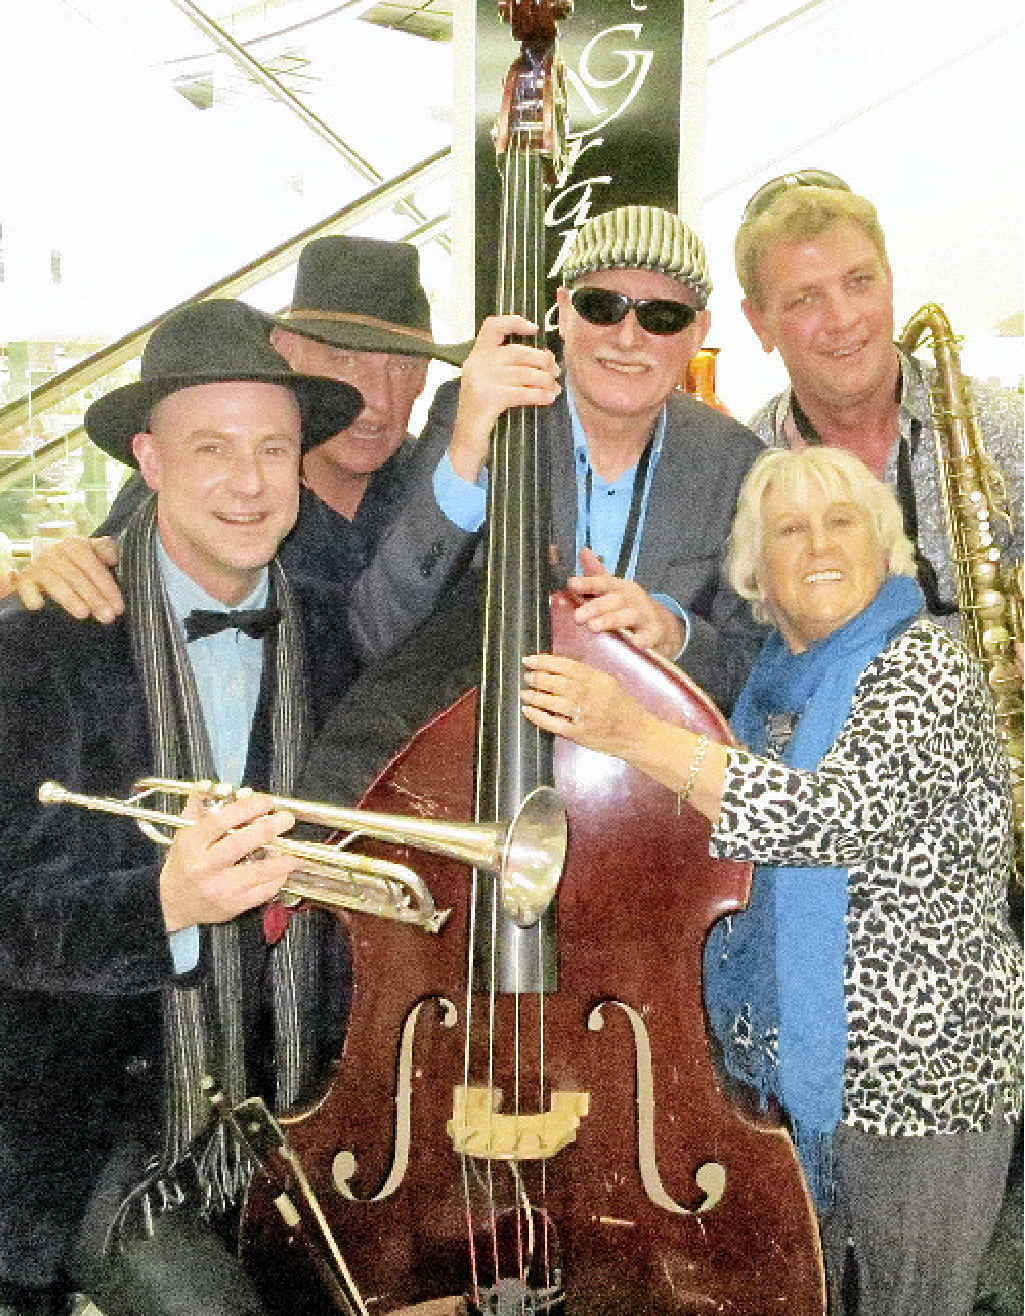 Carmel, a Gold Coast pensioner and jazz enthusiast, is pictured with new and old members of the group at the jazz festival – Mal Wood (trumpet), John Conley (double bass and bass guitar), Willy Qua (saxophone, flute and drums), and Richard Booth (sax, clarinet, trombone and steel drums).